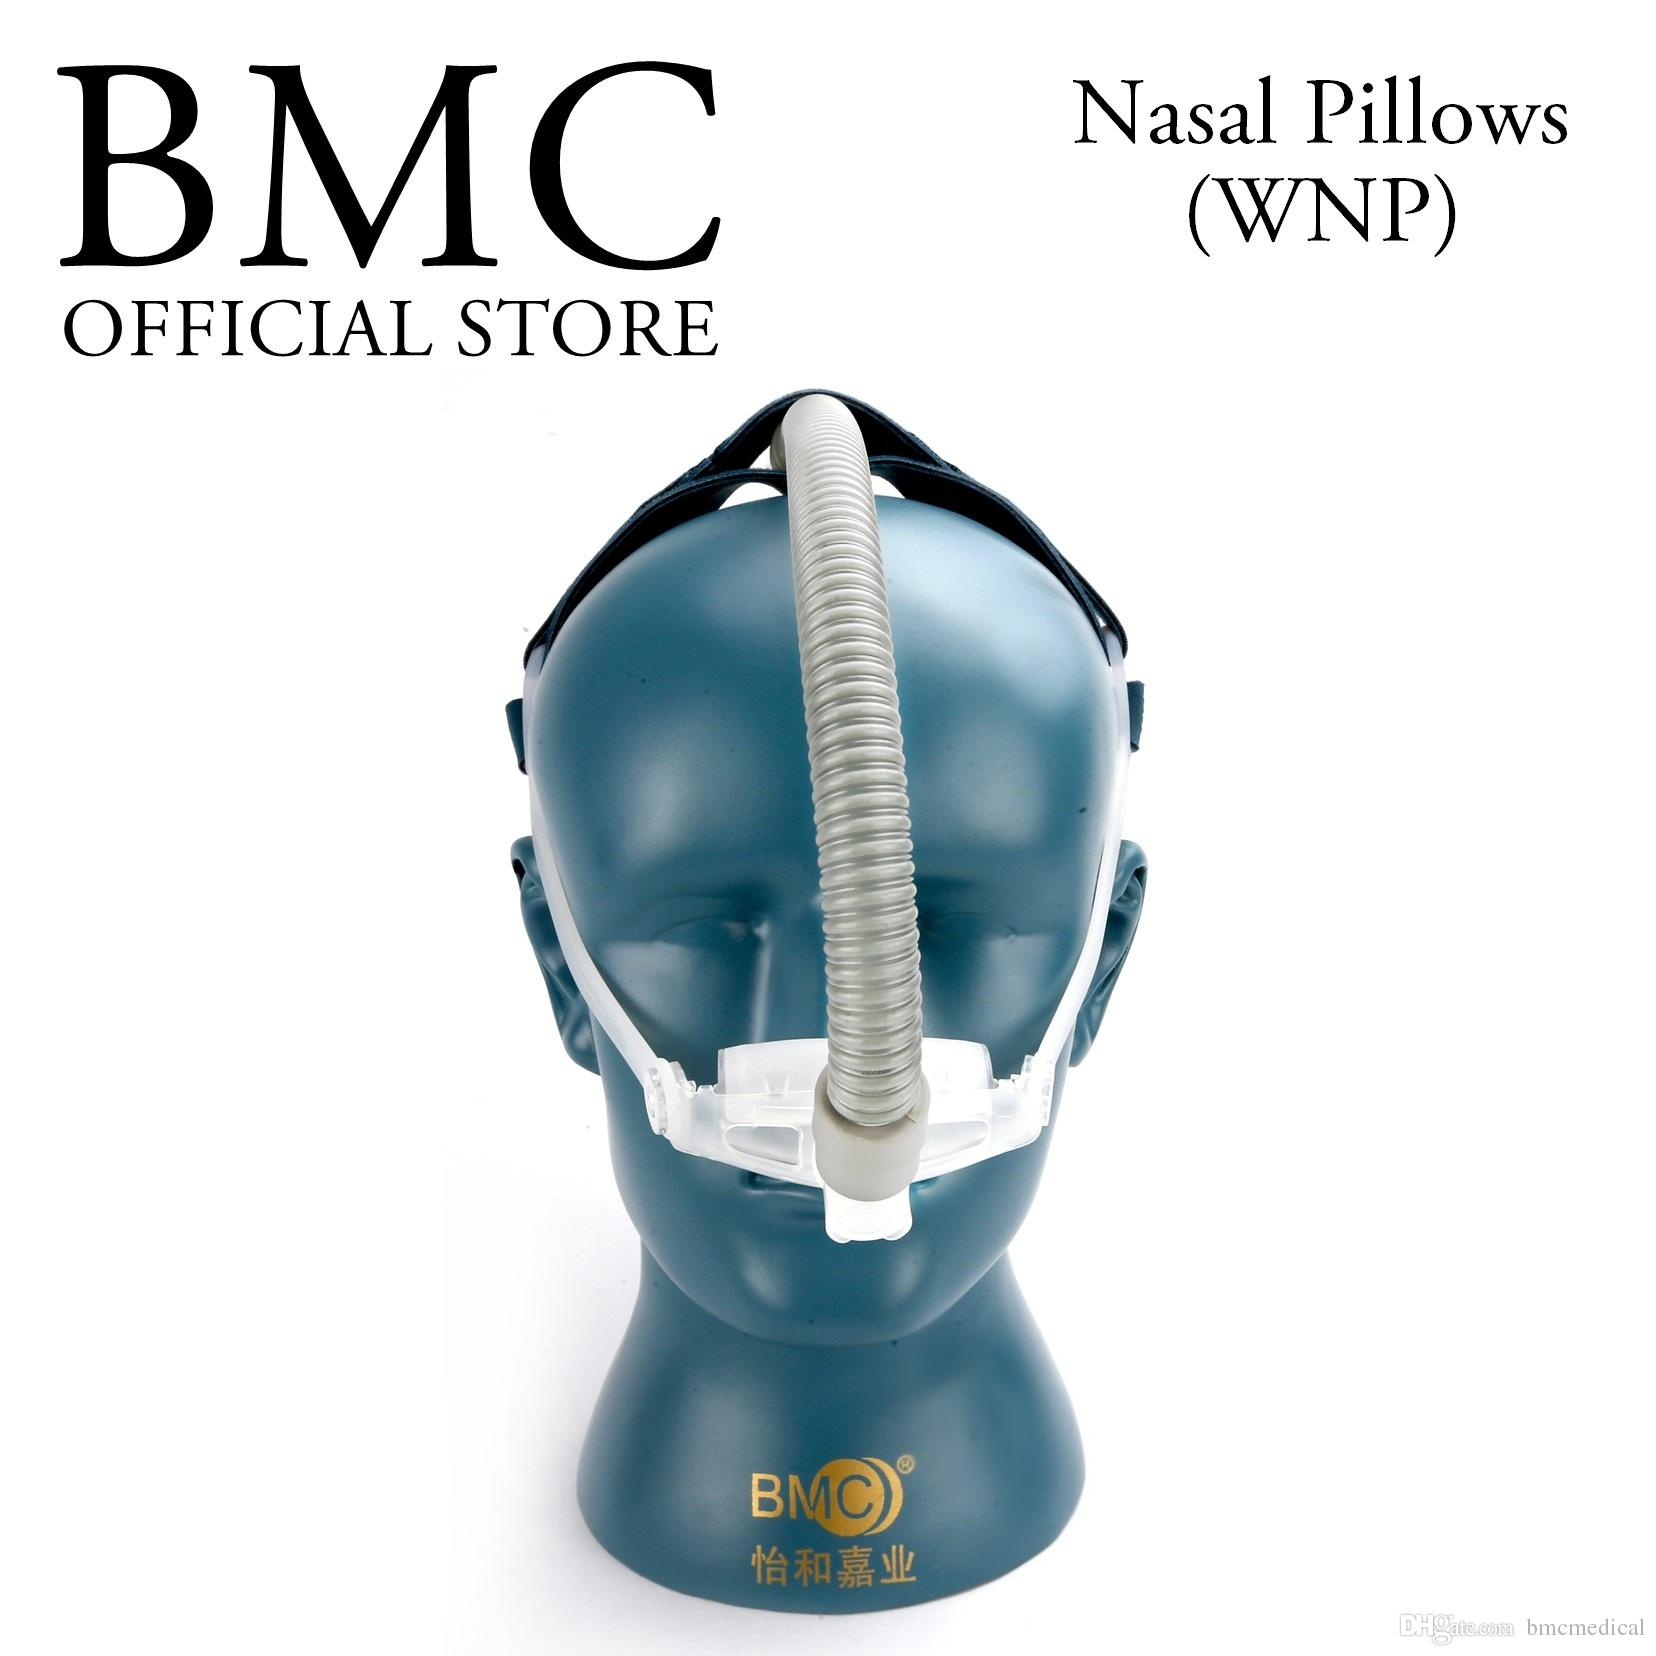 bmc wnp nasal pillows mask packaing sml 3 size silicon pad cpap machine medical interface cpap full face masks custom face mask from bmcmedical